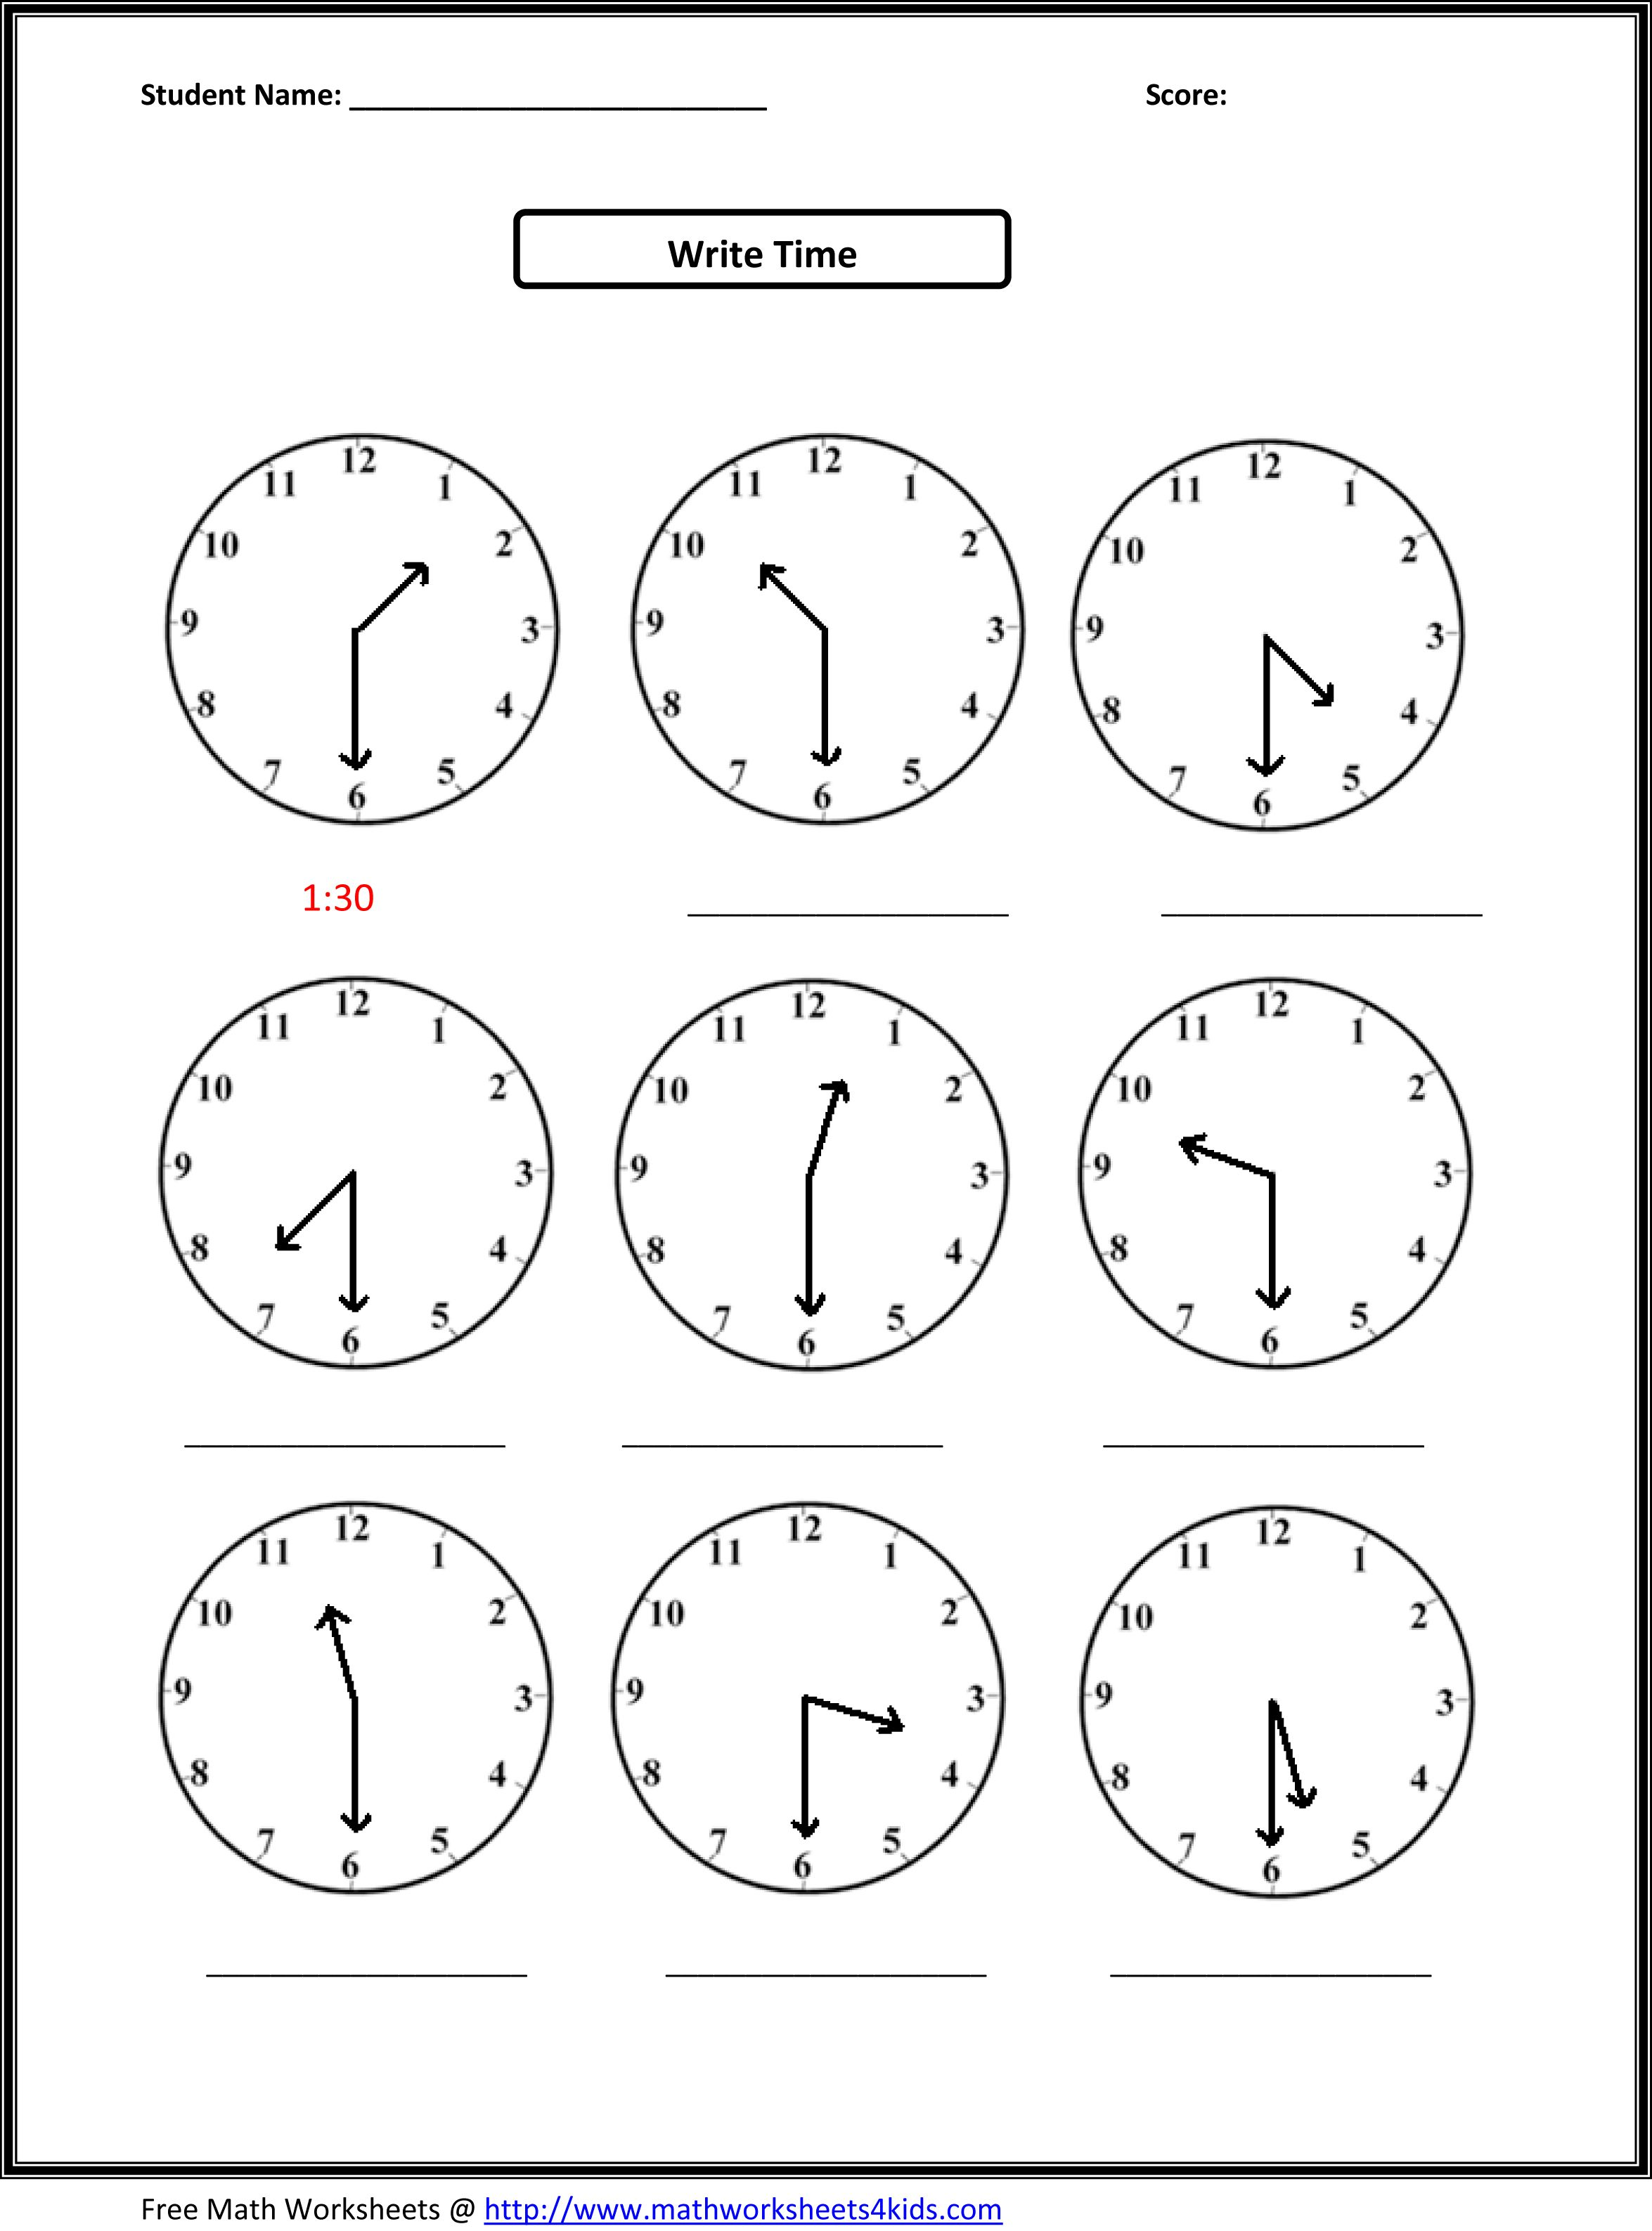 Weirdmailus  Inspiring Worksheet On Time For Grade   Reocurent With Magnificent Free Printable Telling Time Worksheets Nd Grade  Reocurent With Divine Algebra  Linear Equations Worksheets Also R Controlled Vowels Worksheets Nd Grade In Addition Addition And Subtraction Of Decimals Worksheets And Sight Words For First Grade Worksheets Free As Well As Computer Worksheets For Middle School Additionally Esl For Adults Worksheets From Reocurentcom With Weirdmailus  Magnificent Worksheet On Time For Grade   Reocurent With Divine Free Printable Telling Time Worksheets Nd Grade  Reocurent And Inspiring Algebra  Linear Equations Worksheets Also R Controlled Vowels Worksheets Nd Grade In Addition Addition And Subtraction Of Decimals Worksheets From Reocurentcom